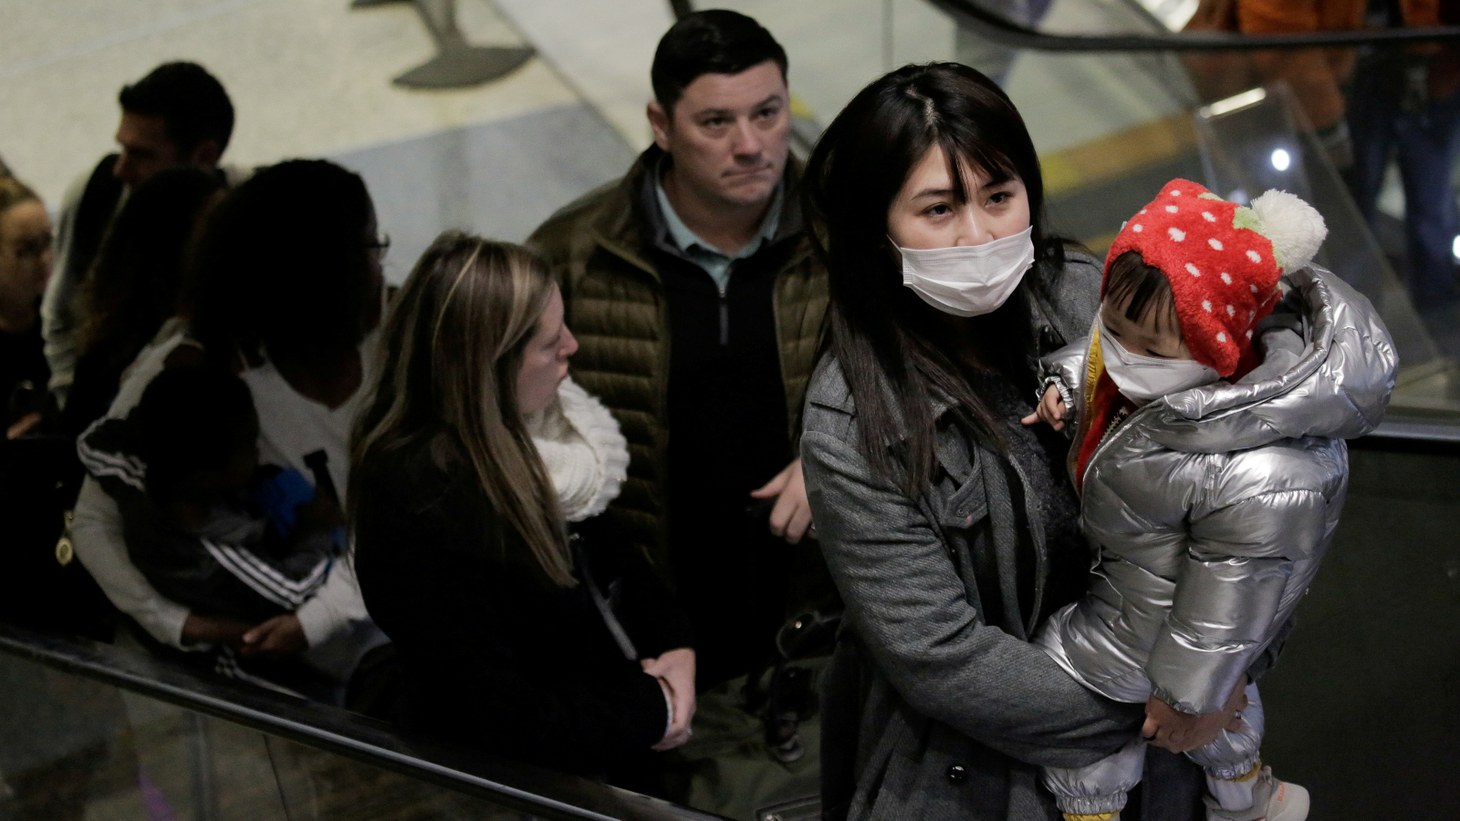 Travellers wearing masks arrive on a direct flight from China, after a spokesman from the U.S. Centers for Disease Control and Prevention (CDC) said a traveller from China had been the first person in the United States to be diagnosed with the Wuhan coronavirus, at Seattle-Tacoma International Airport in SeaTac, Washington, U.S. January 23, 2020.